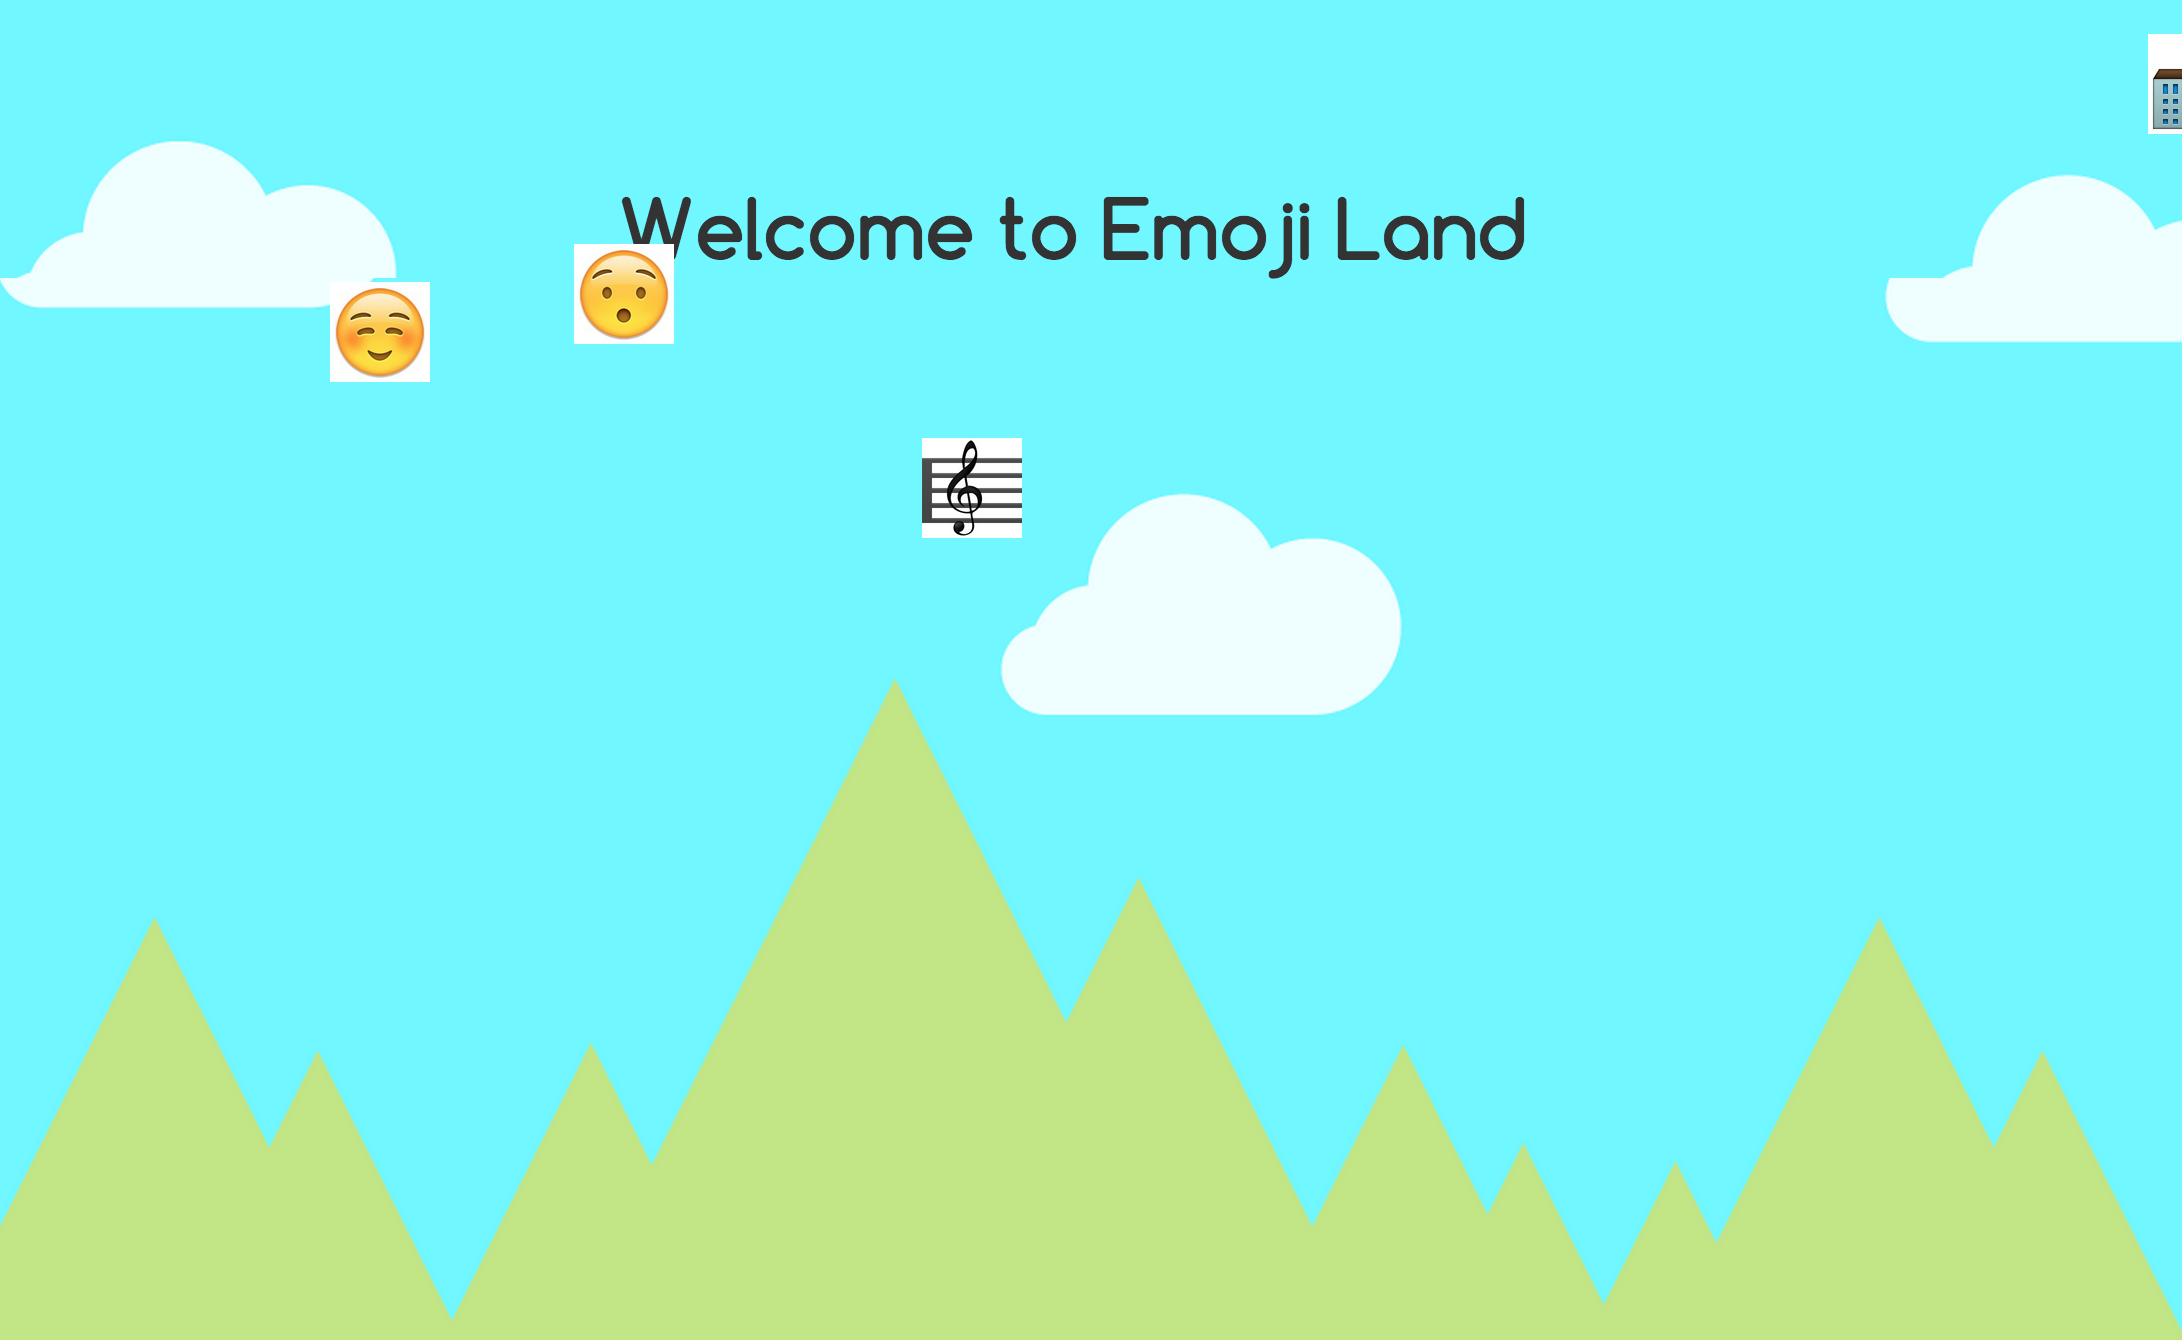 Emojiland is now